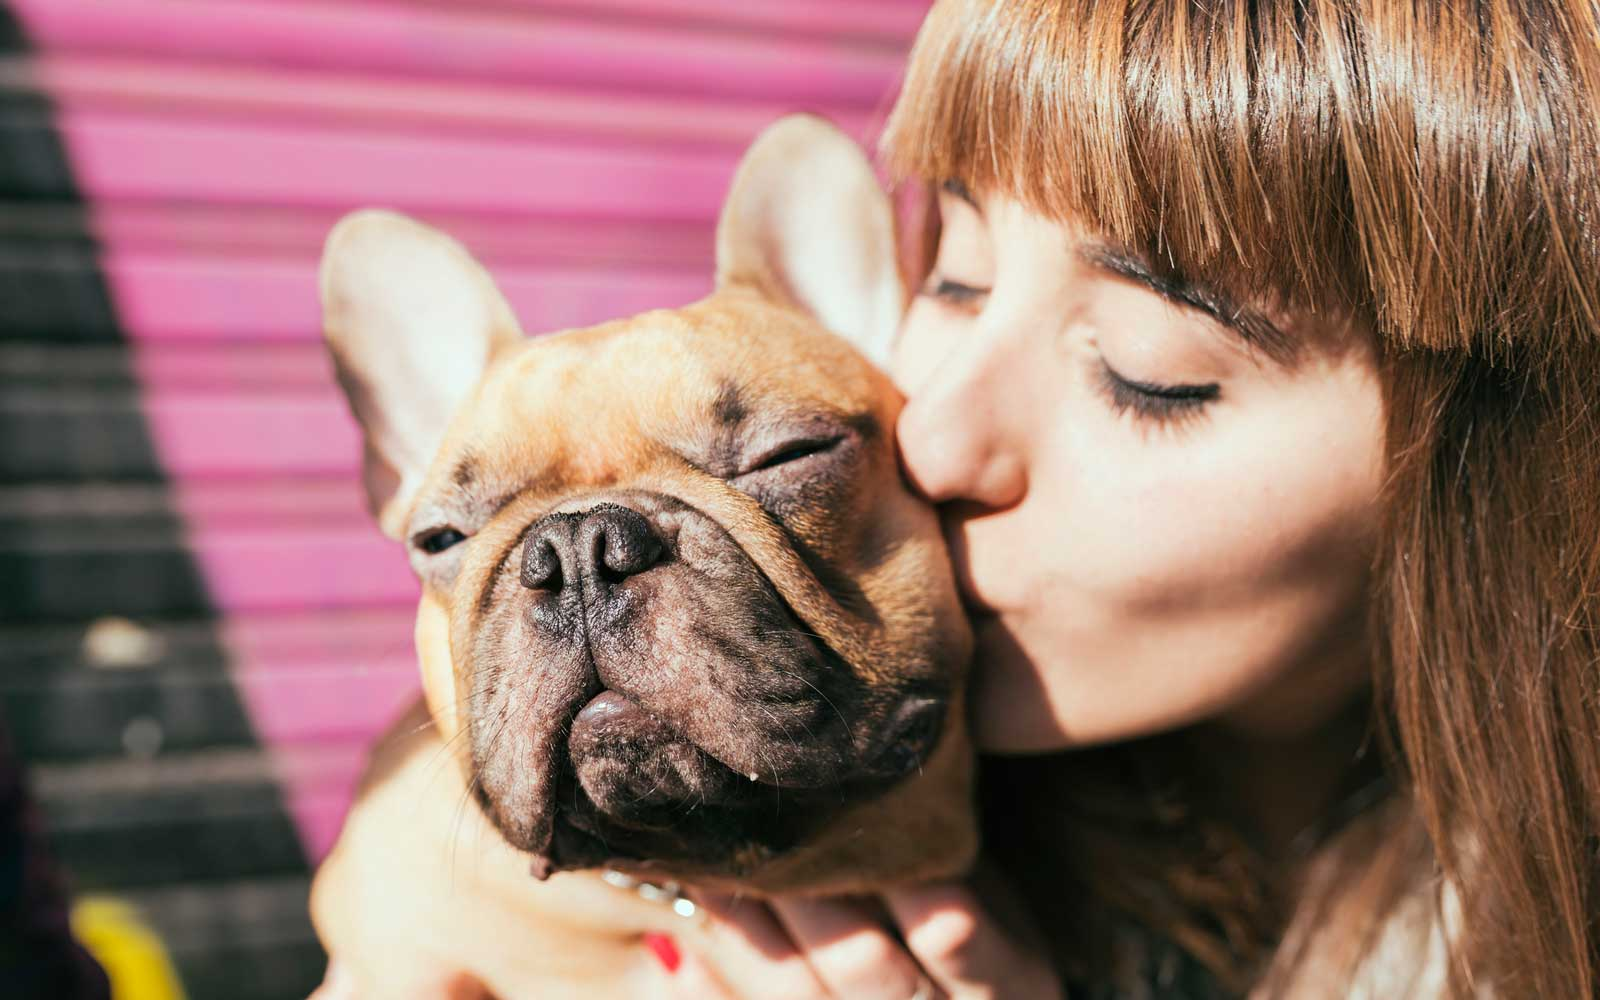 Humans Love Dogs More Than Other Humans, Study Confirms